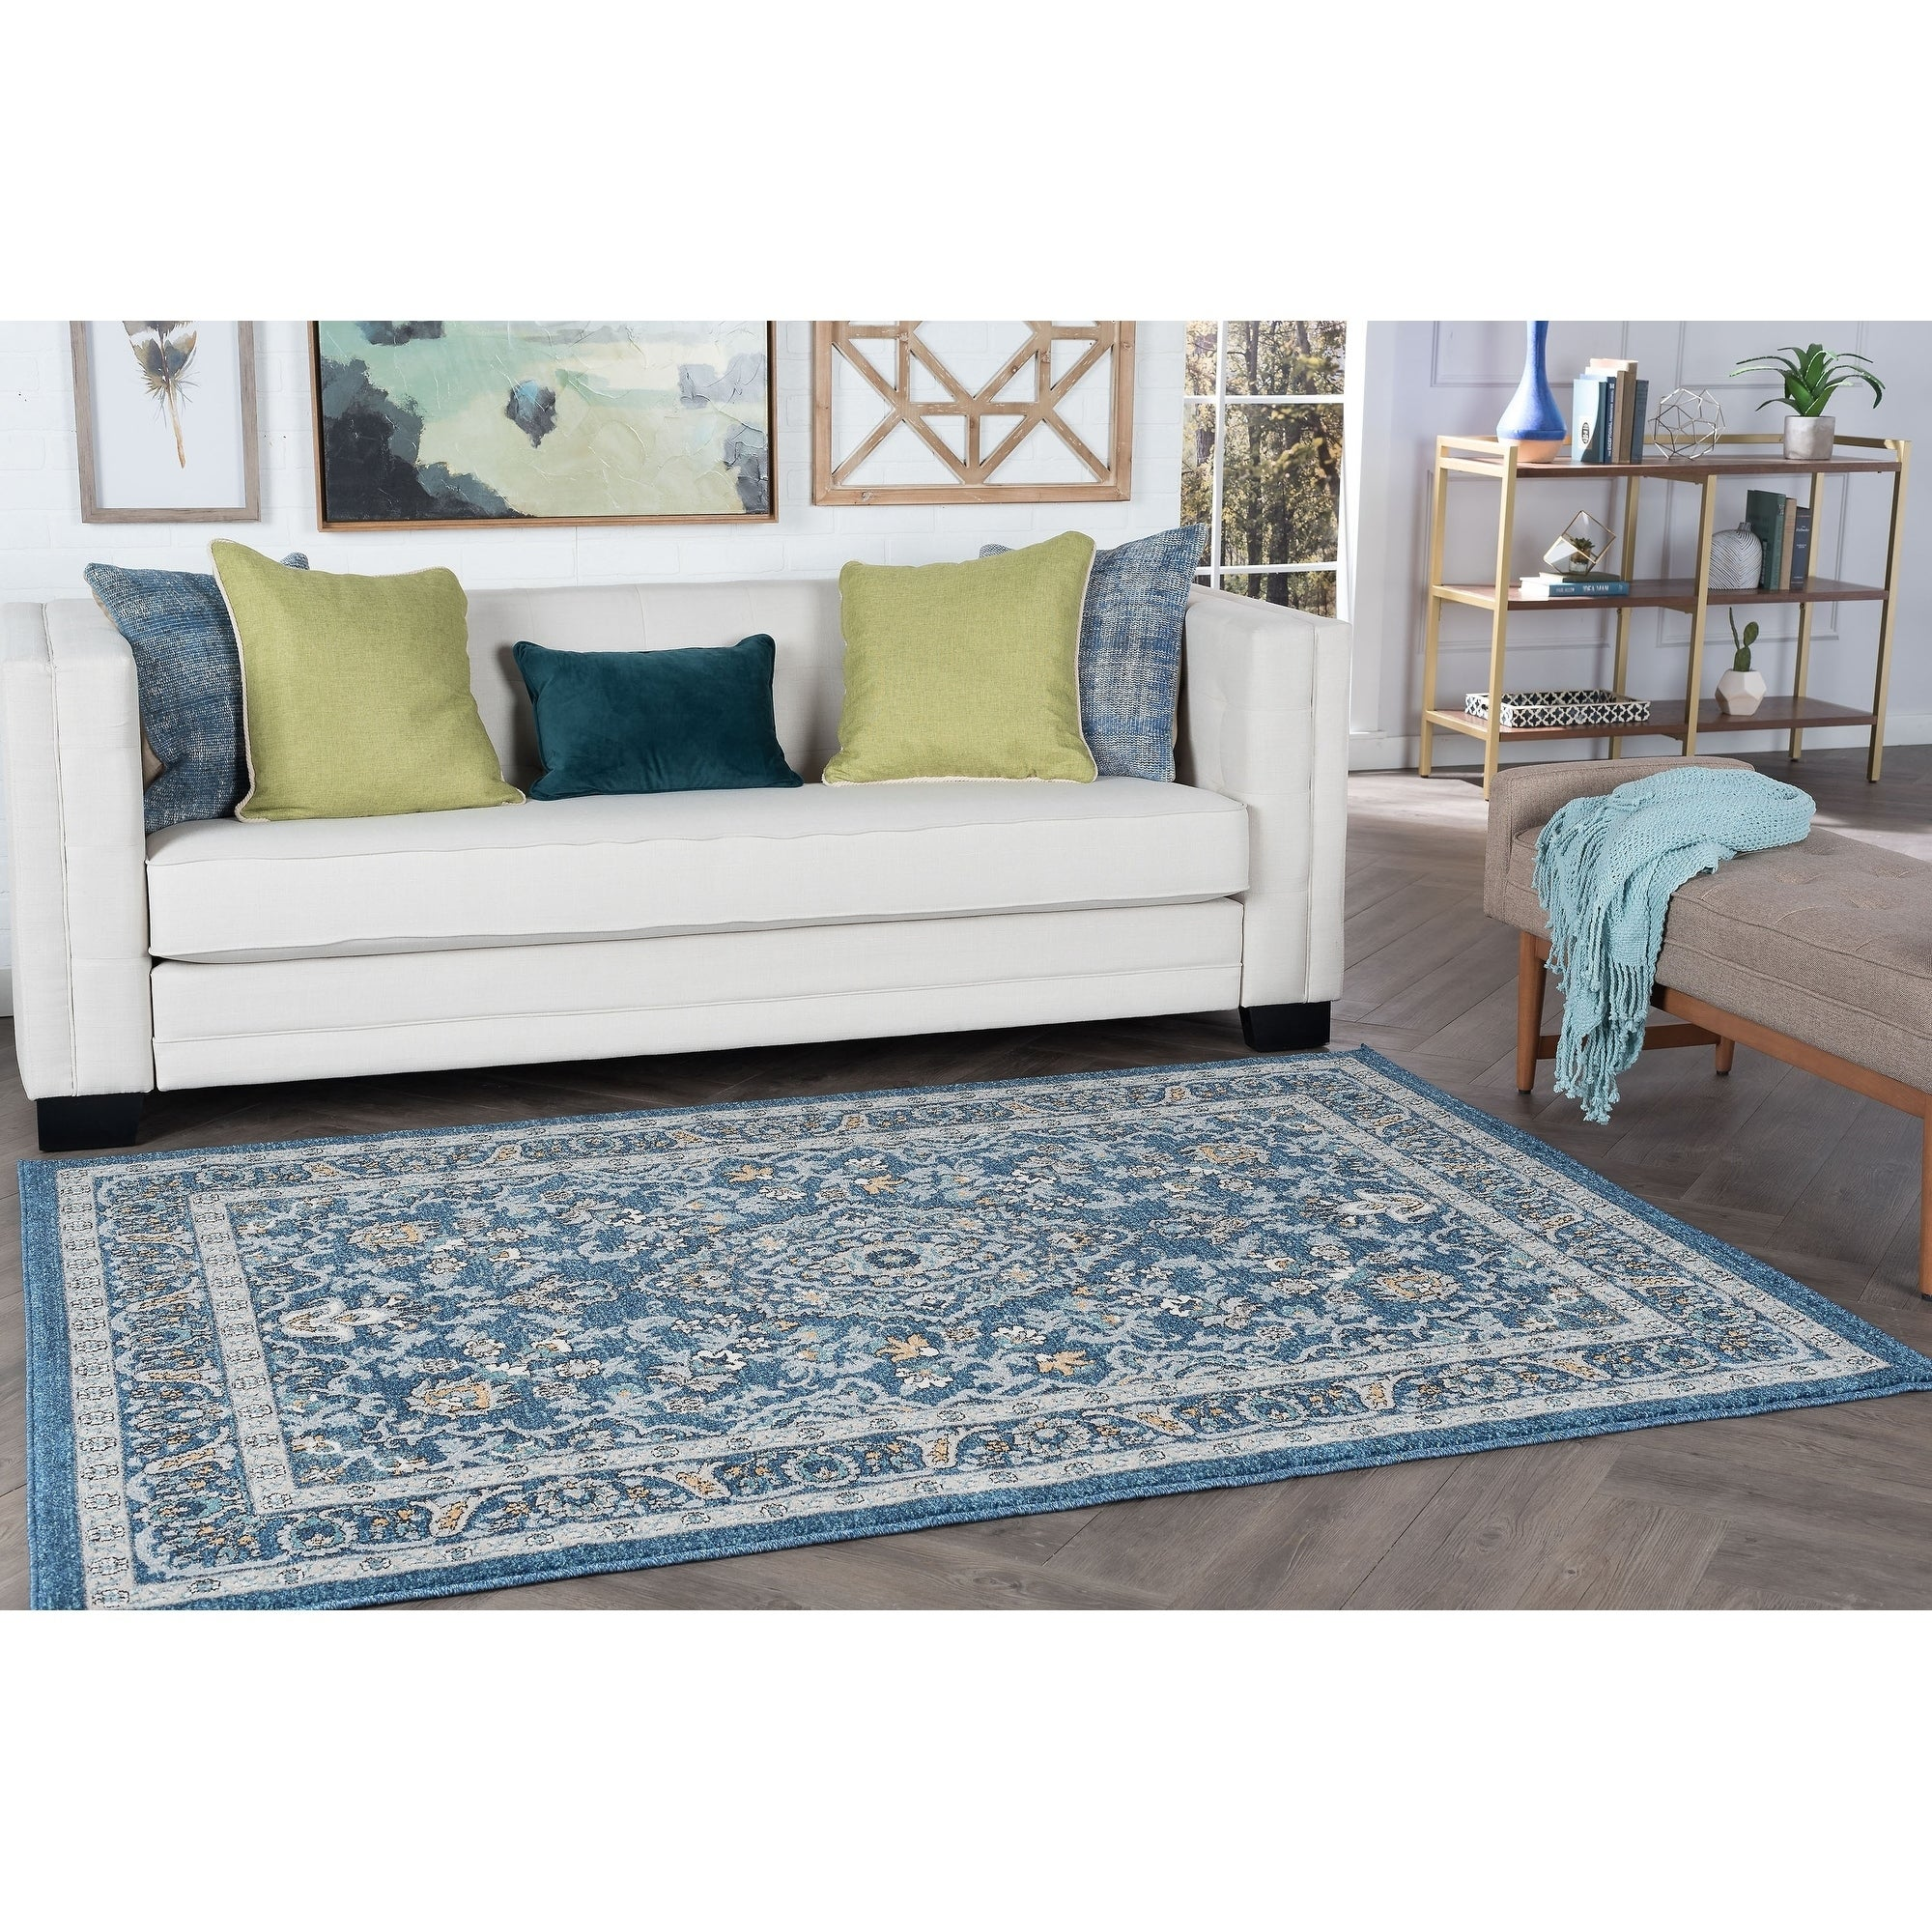 Alise Rugs Kinsley Traditional Oriental Area Rug (710 x 103 - navy)